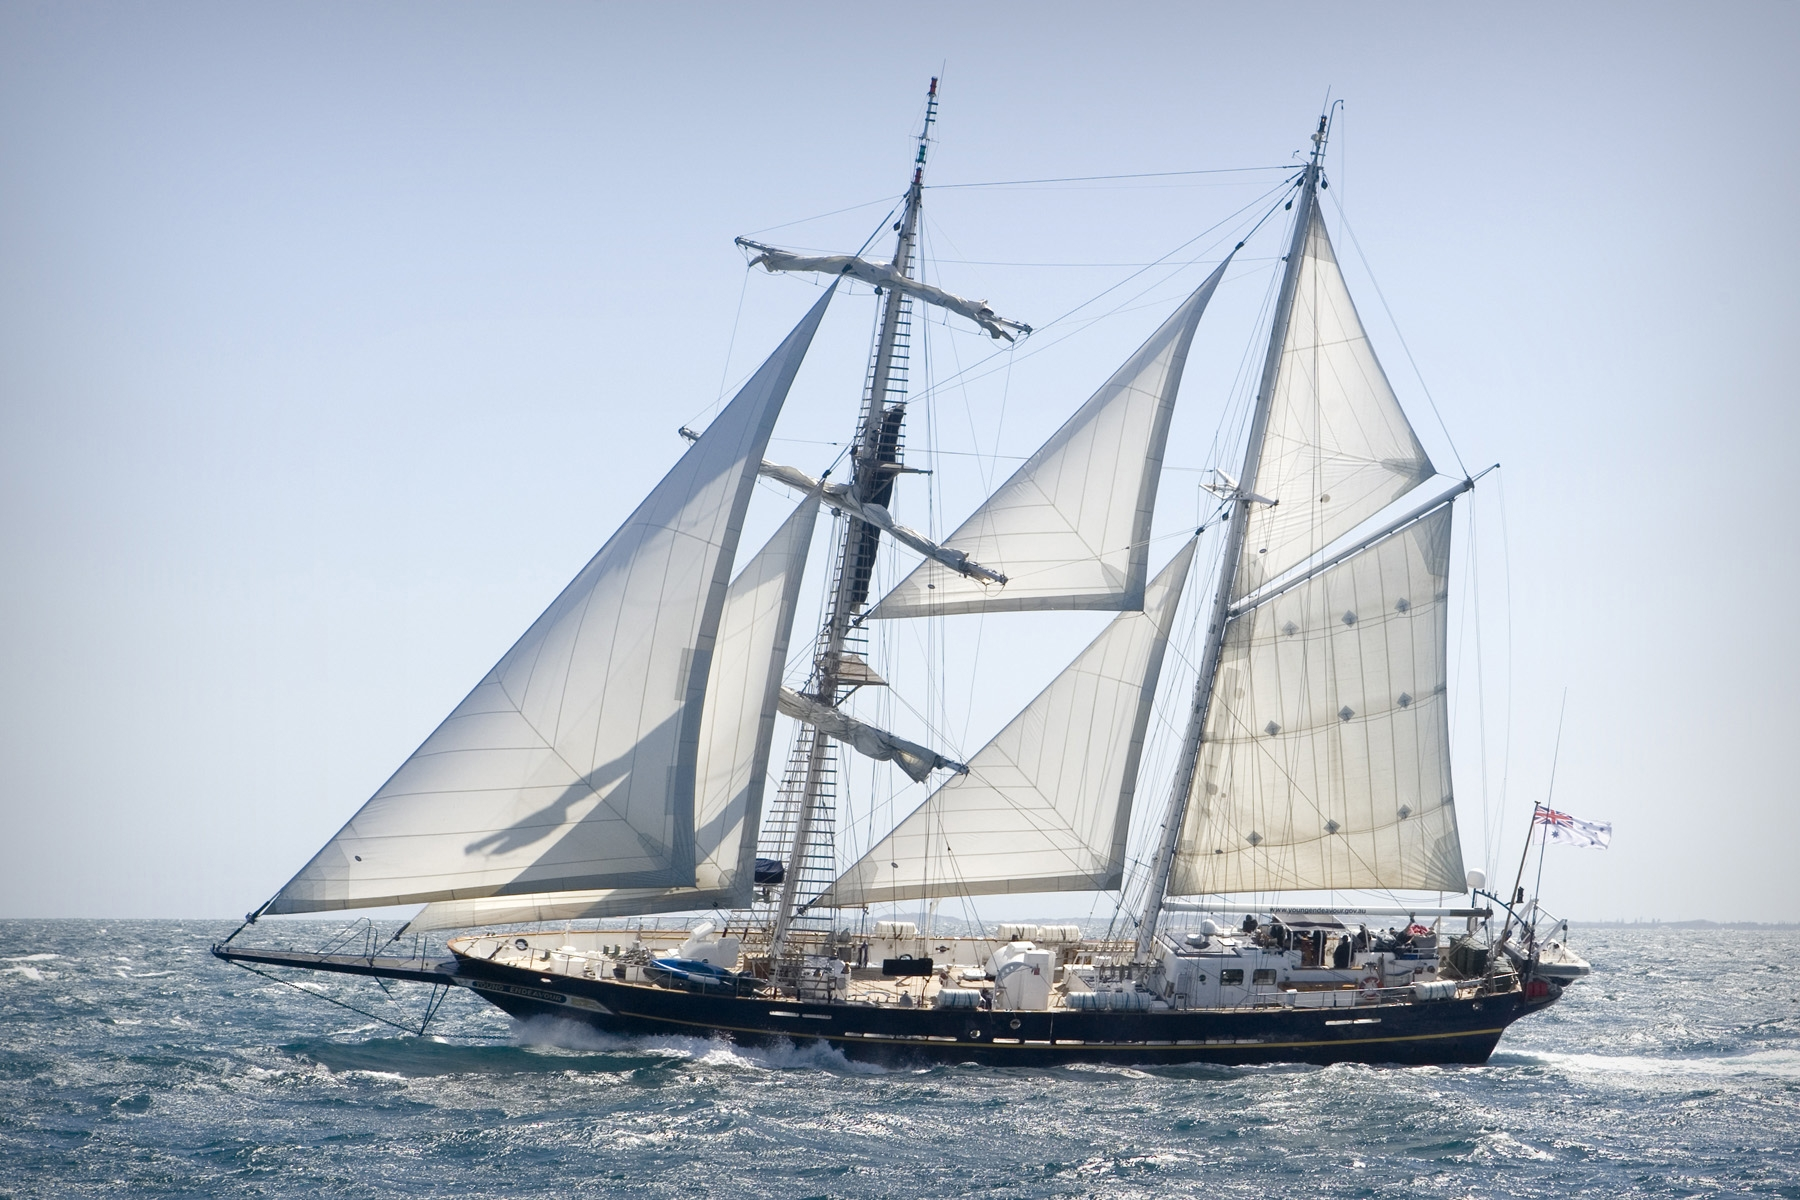 Sail training schip Young Endeavour bij de kust van Fremantle